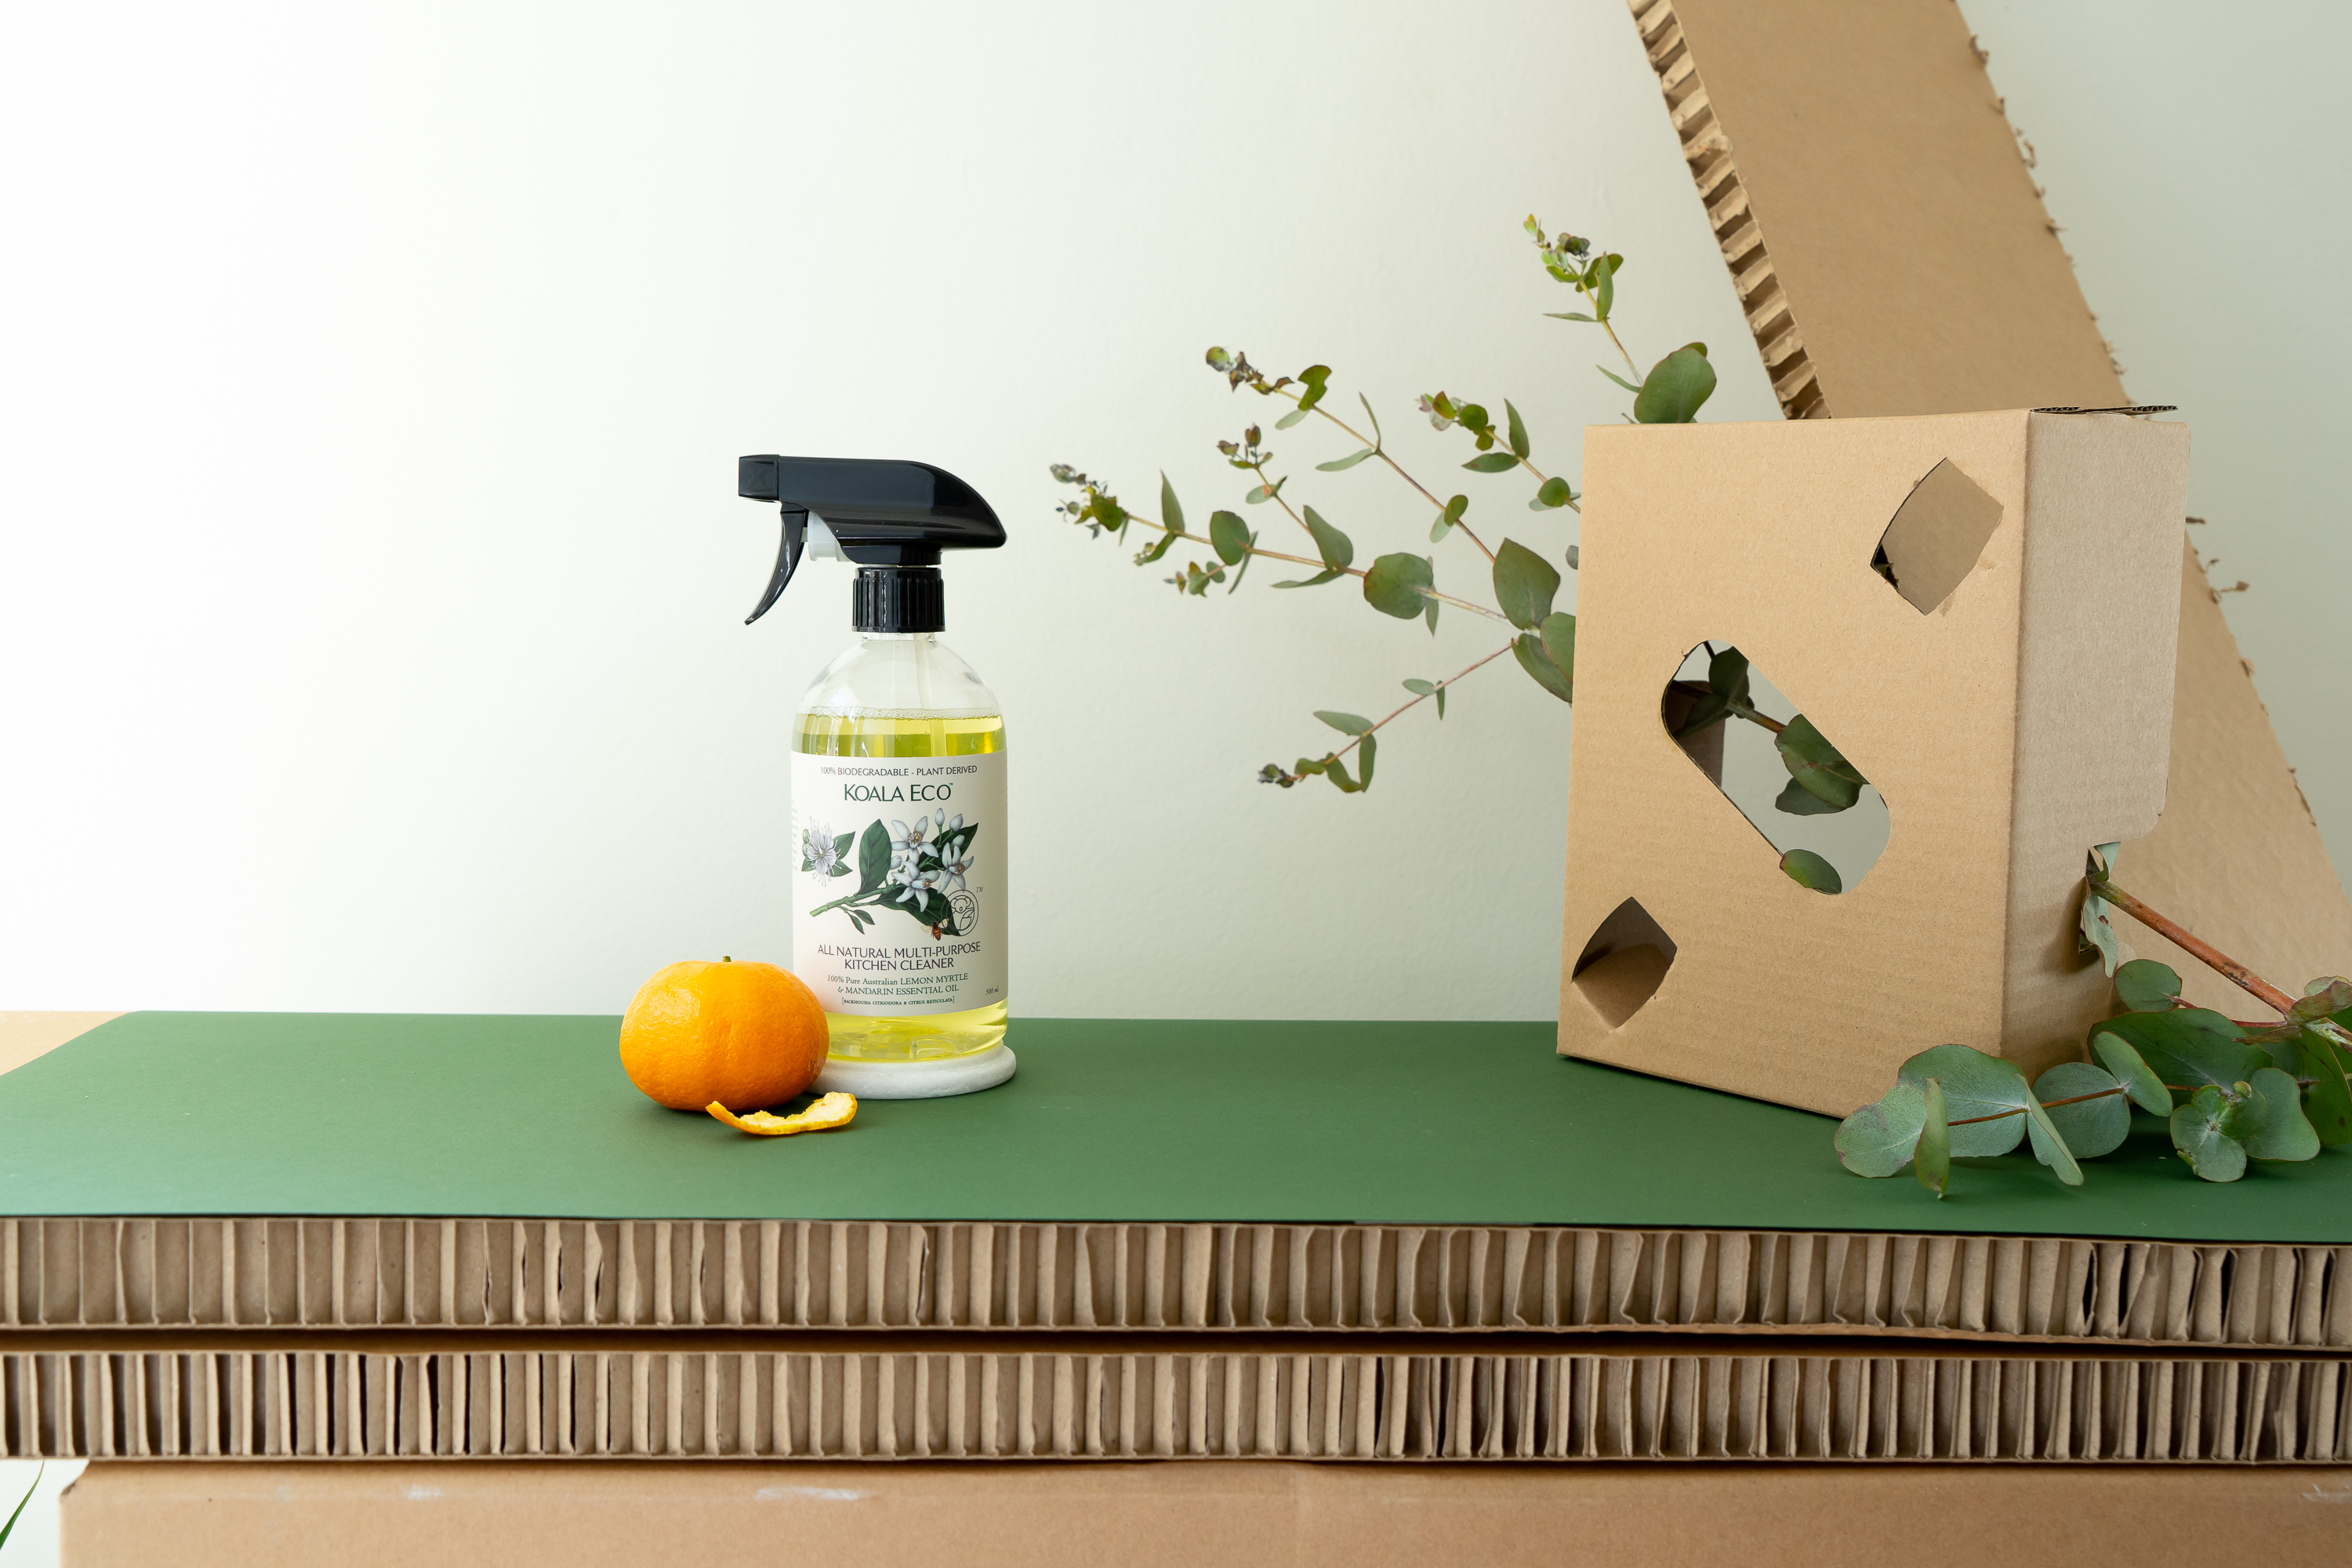 Koala Eco natural cleaning spray with mandarin